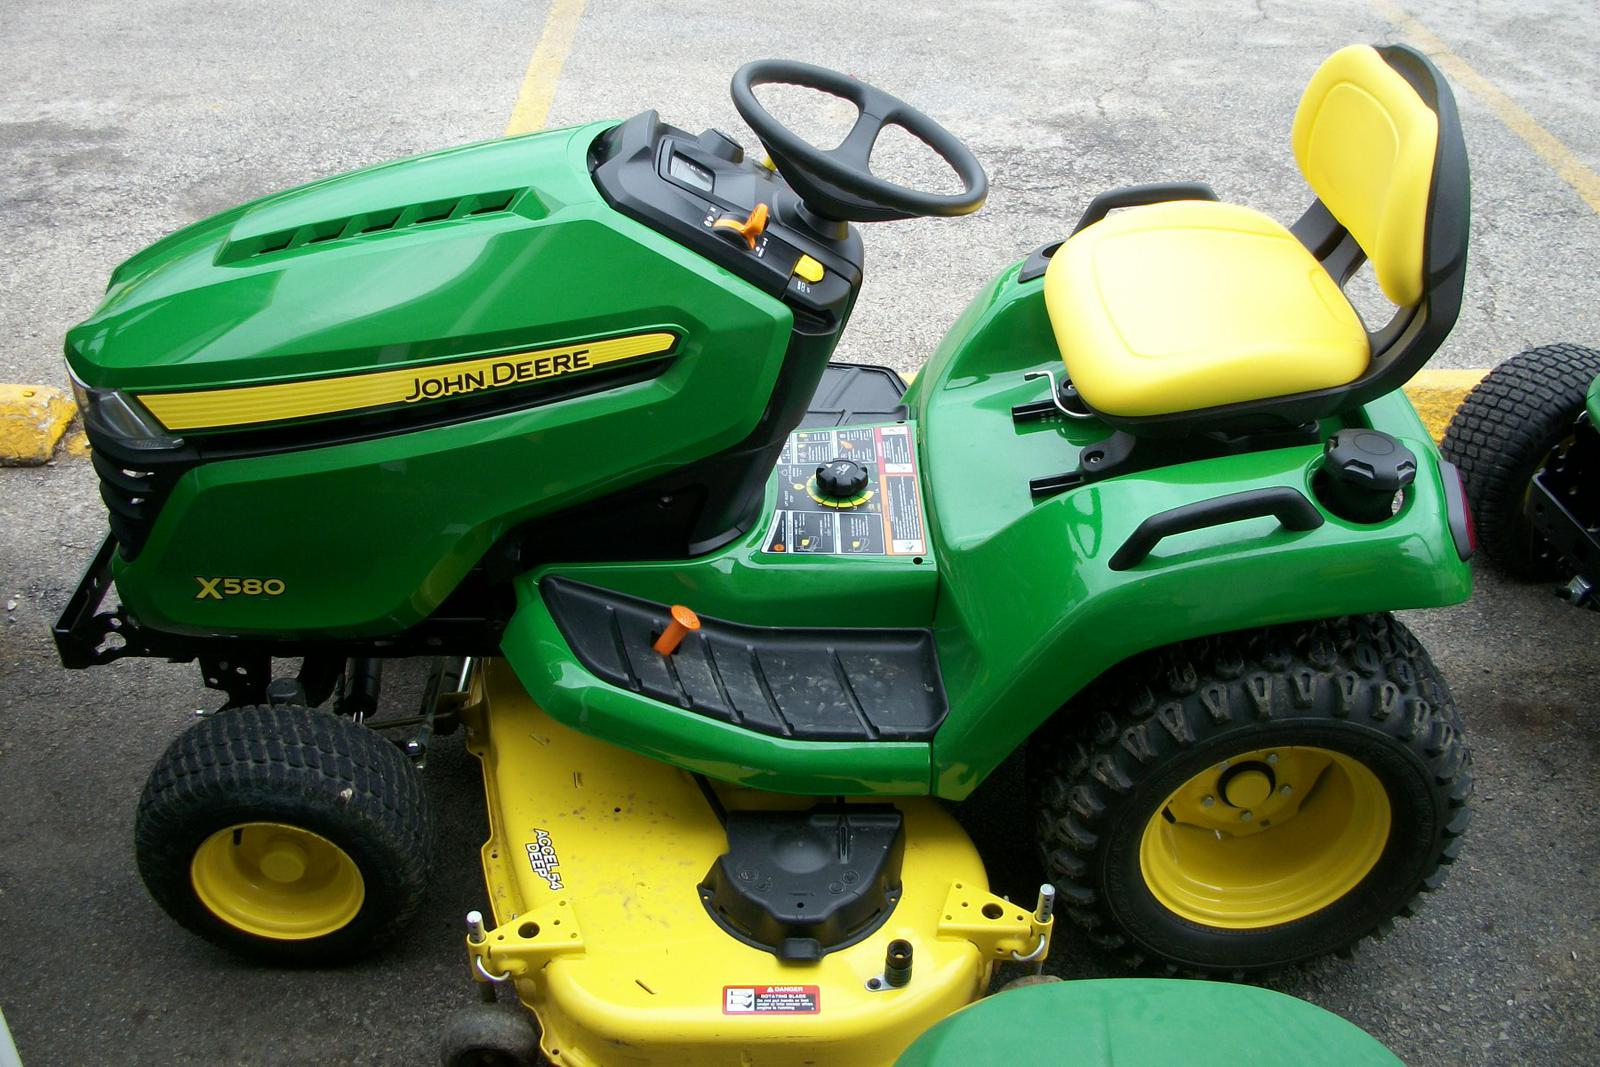 2017 John Deere X580 Tractor with 54-inch Deck for sale in Columbia MO | Farm Power Lawn u0026 Leisure (573) 442-1139 & 2017 John Deere X580 Tractor with 54-inch Deck for sale in ...